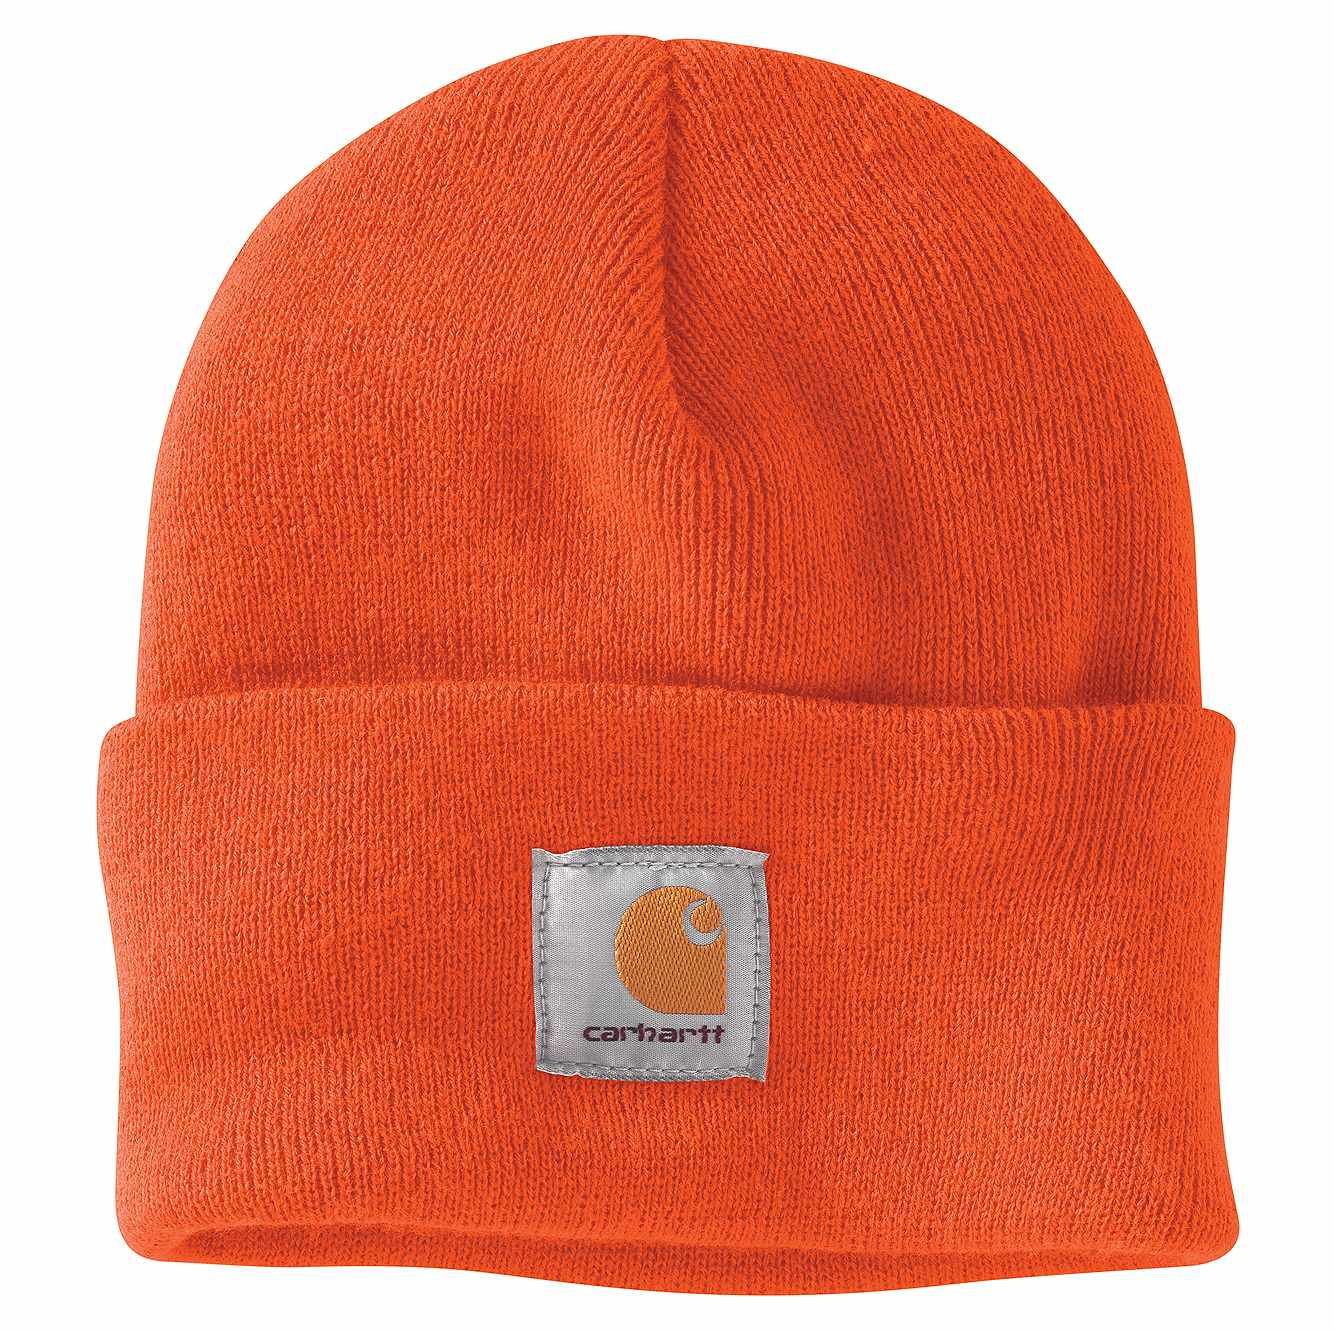 Picture of Acrylic Watch Hat in Brite Orange